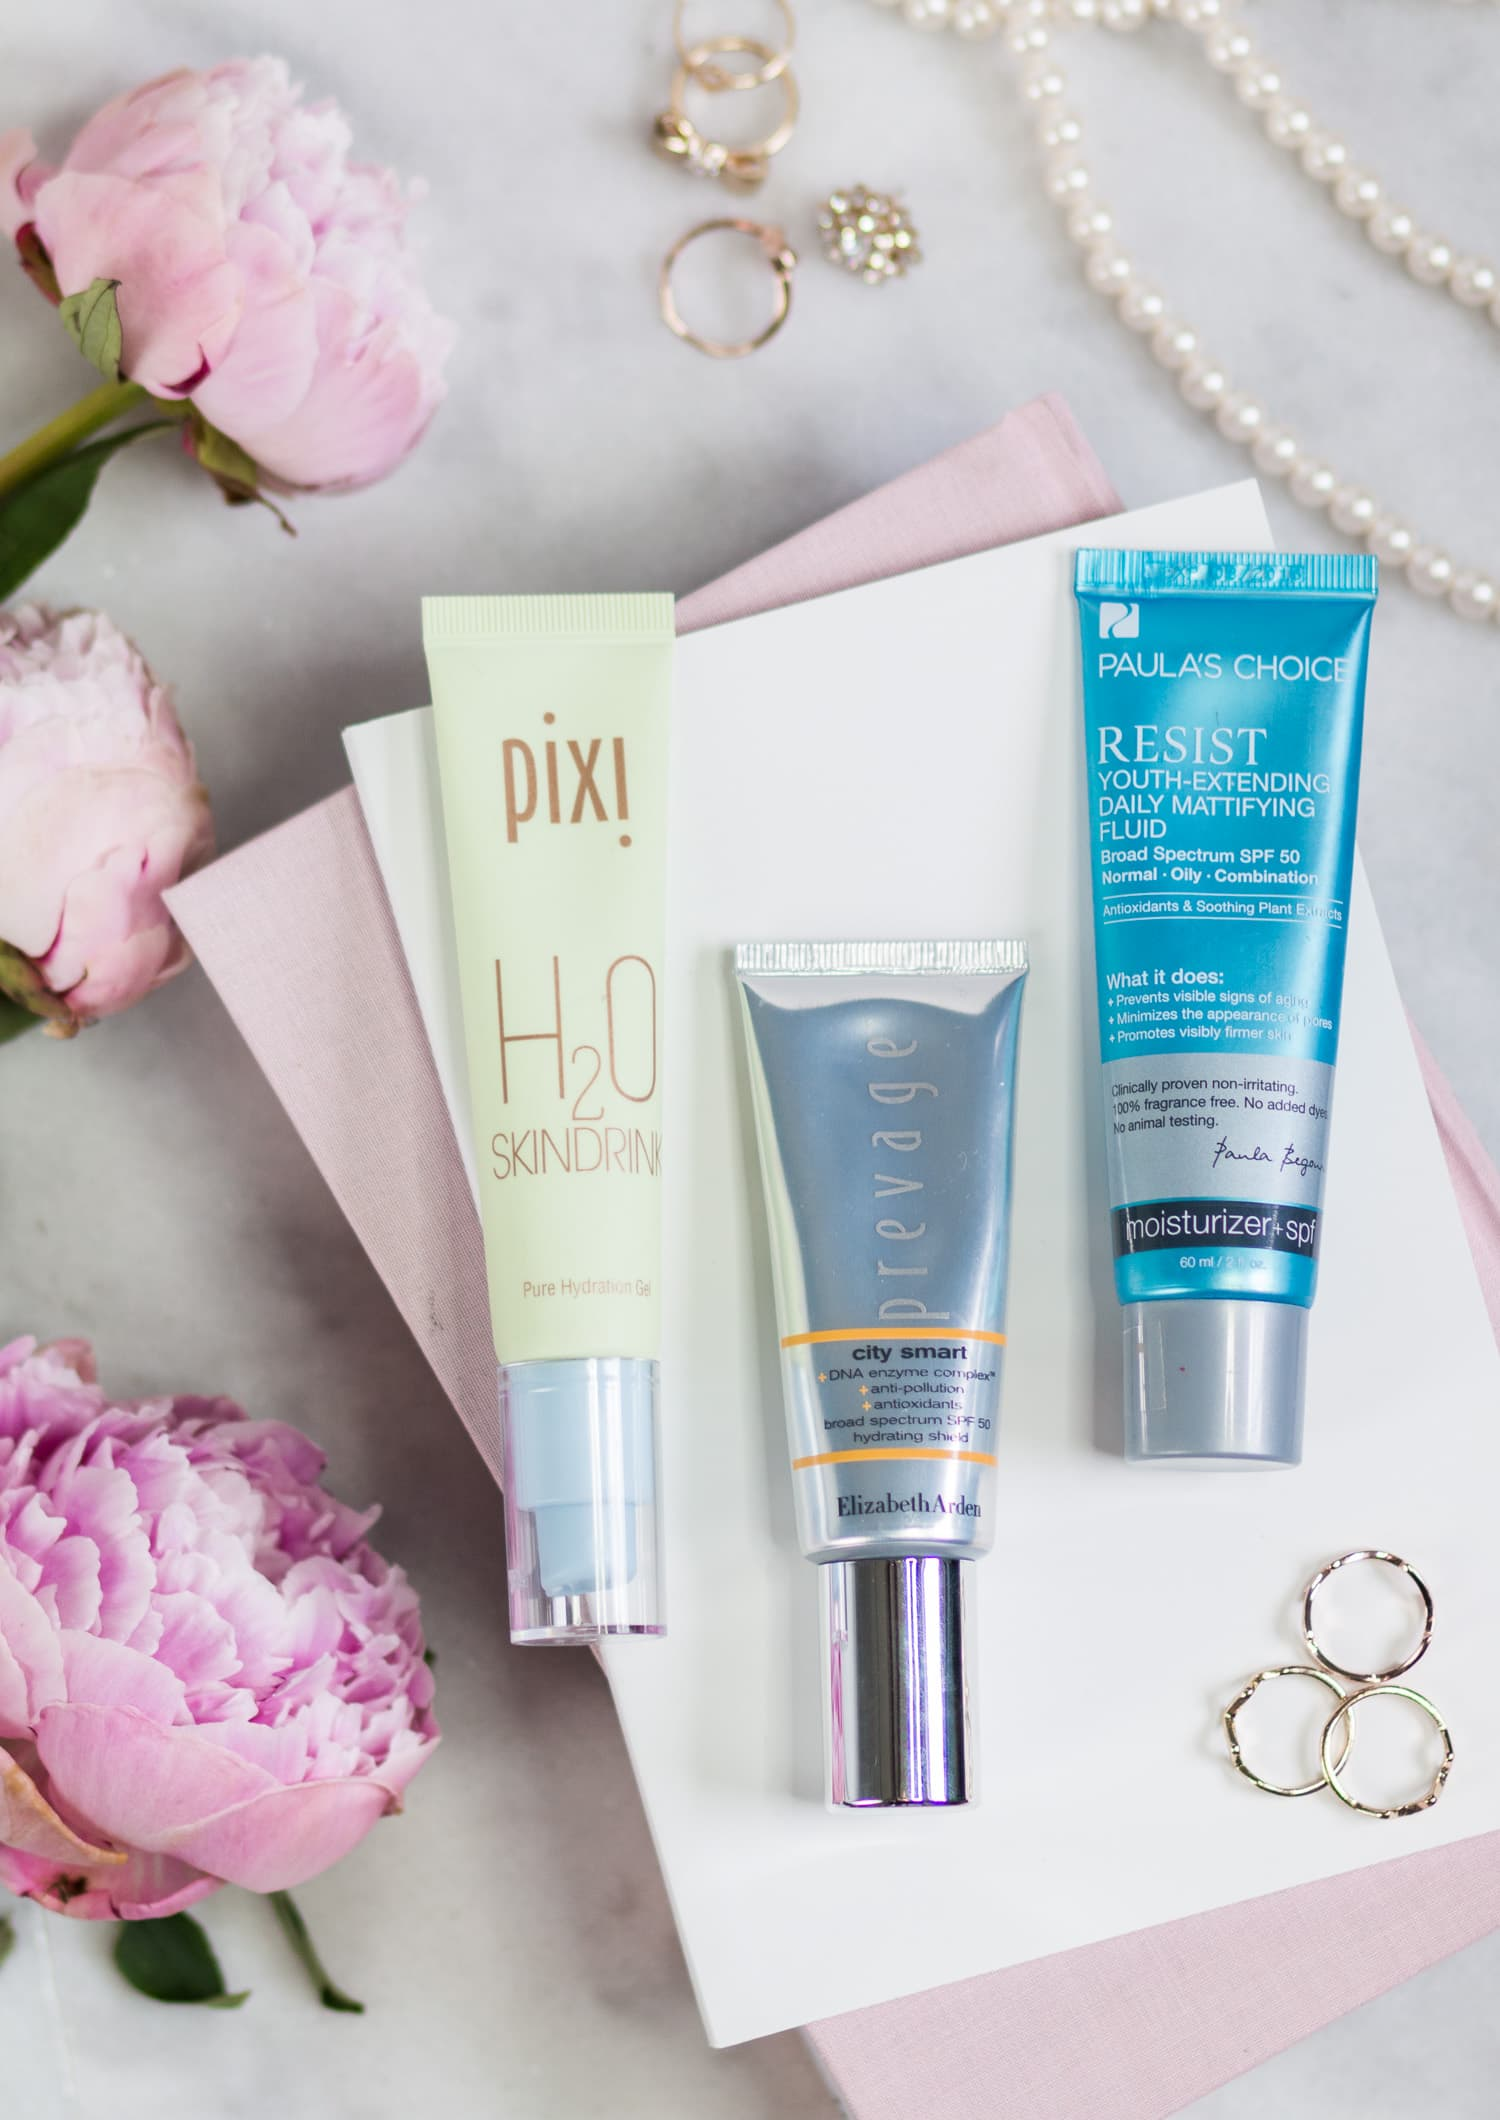 The best new skincare products for women in their 20s - including the best anti-aging moisturizers + a review of Pixi H2O Skindrink Pure Hydration Gel, Elizabeth Arden Prevage City Smart Broad Spectrum SPF 50 Hydrating Shield, and Paula's Choice Resist Youth-Extending Daily Mattifying Fluid by beauty blogger Ashley Brooke Nicholas